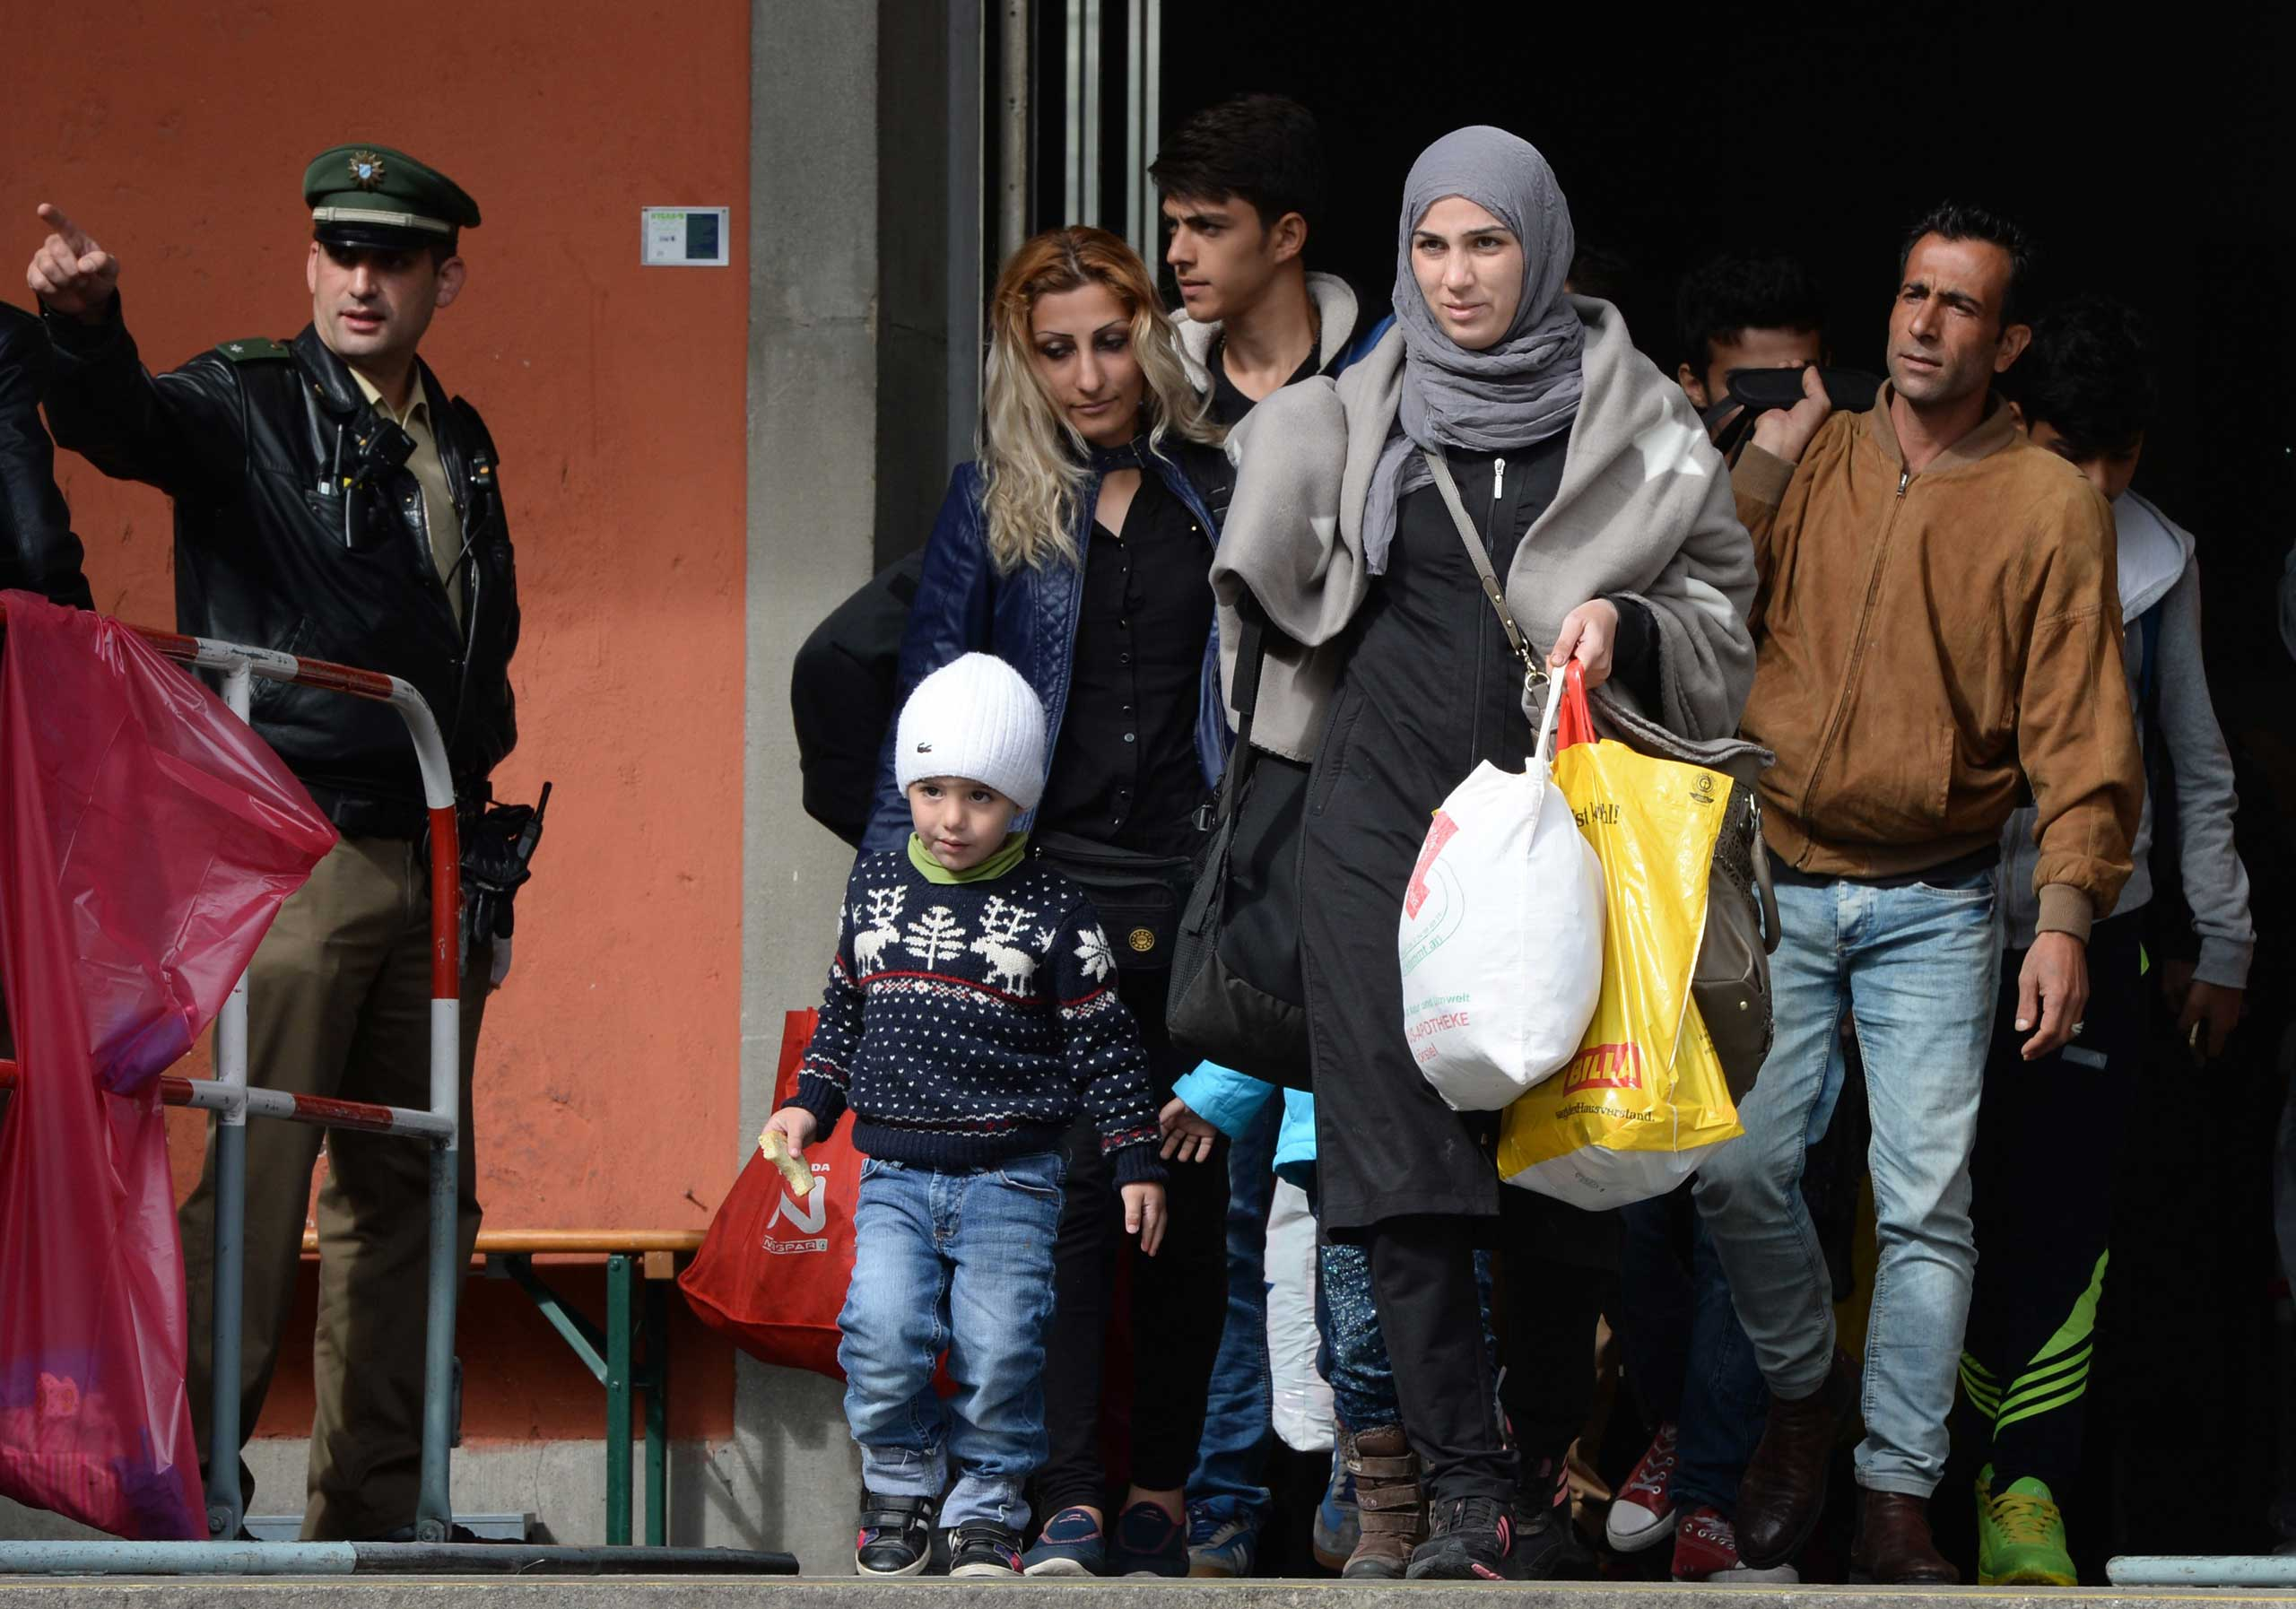 Refugee's arrive in front of the main train station in Munich, southern Germany, September 7, 2015.